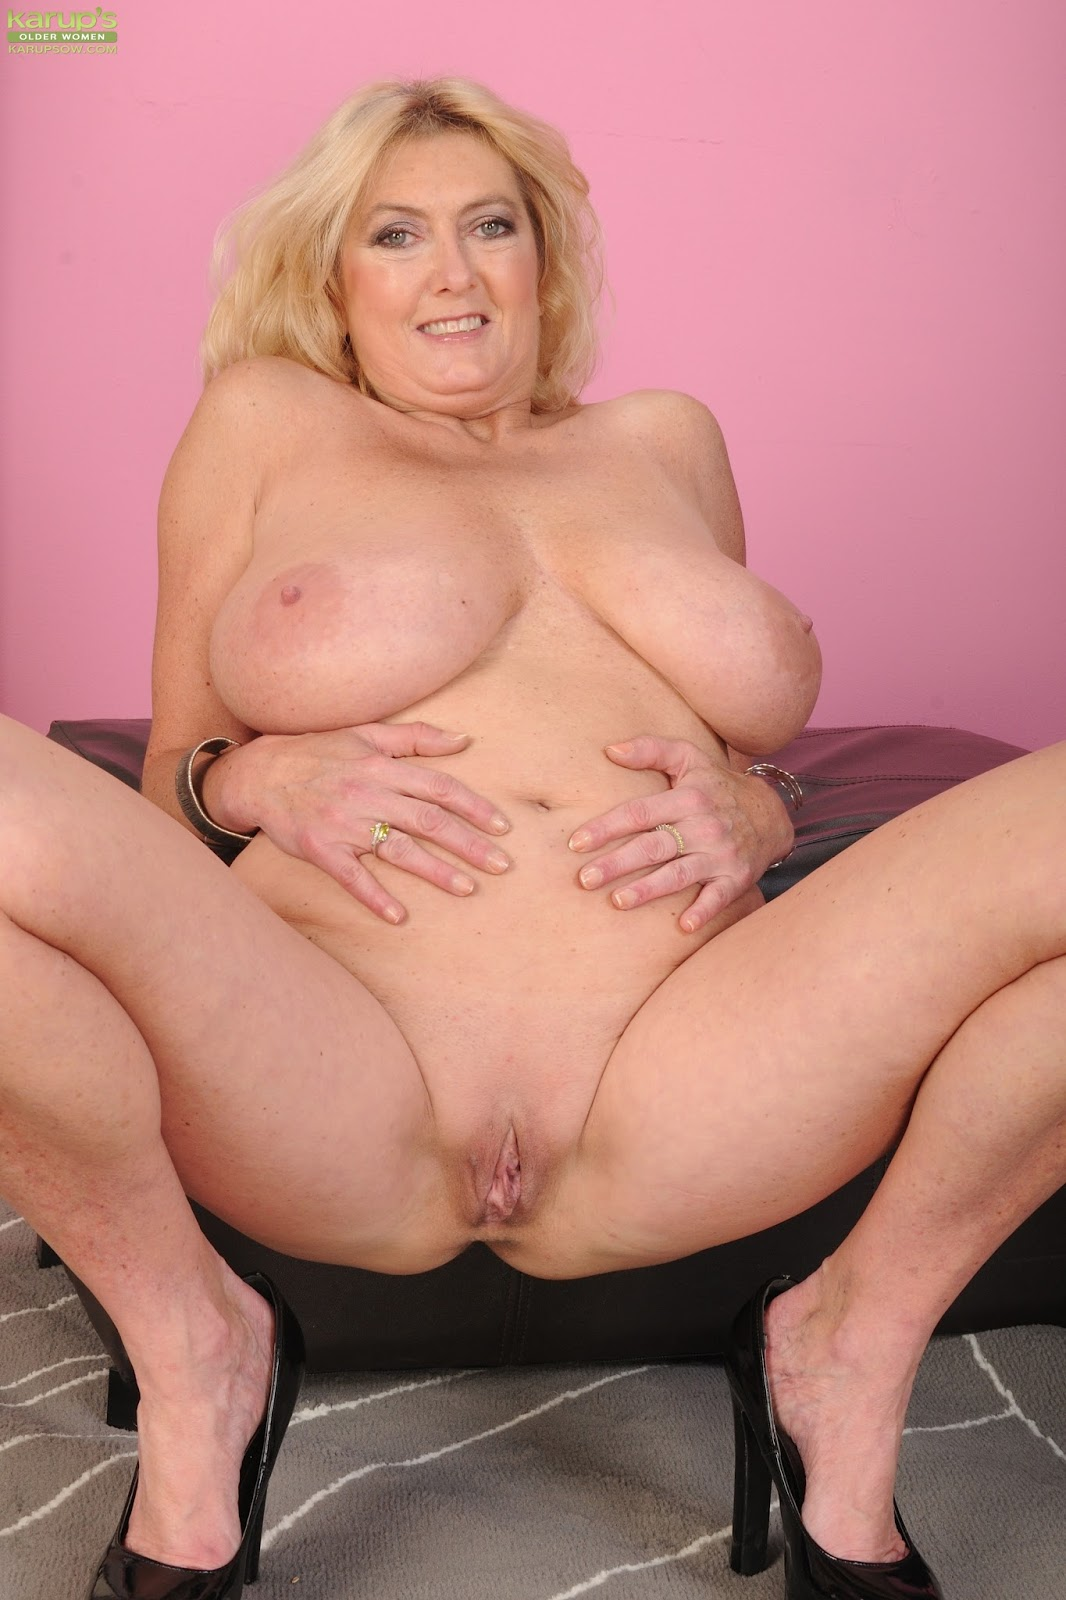 Mine free mature blonde big tits porn not present